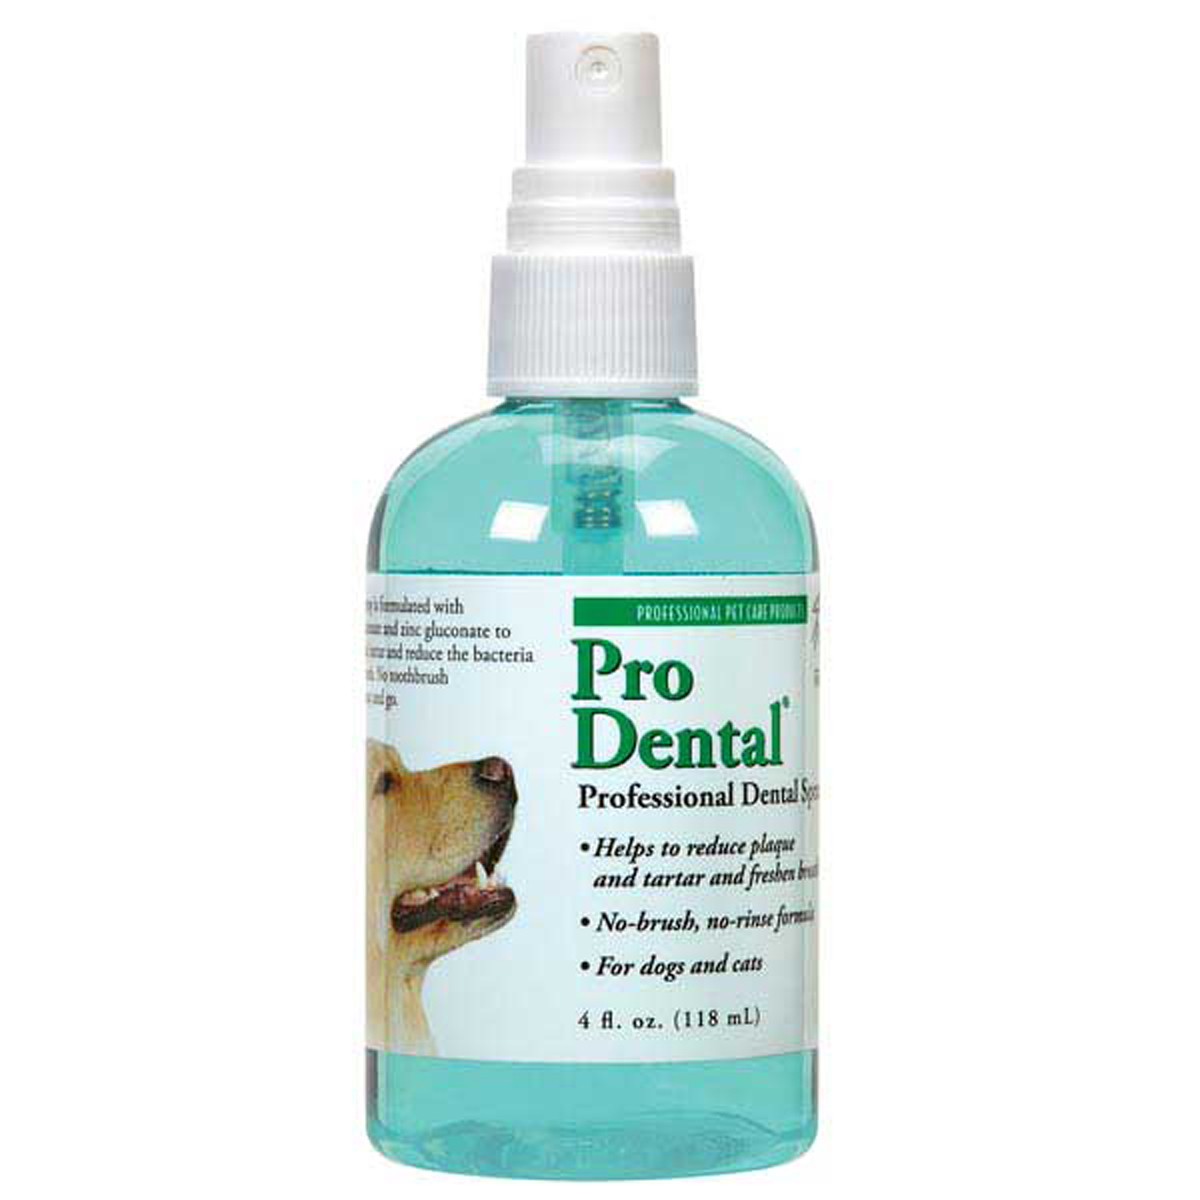 Top Performance Dog and Cat ProDental Spray